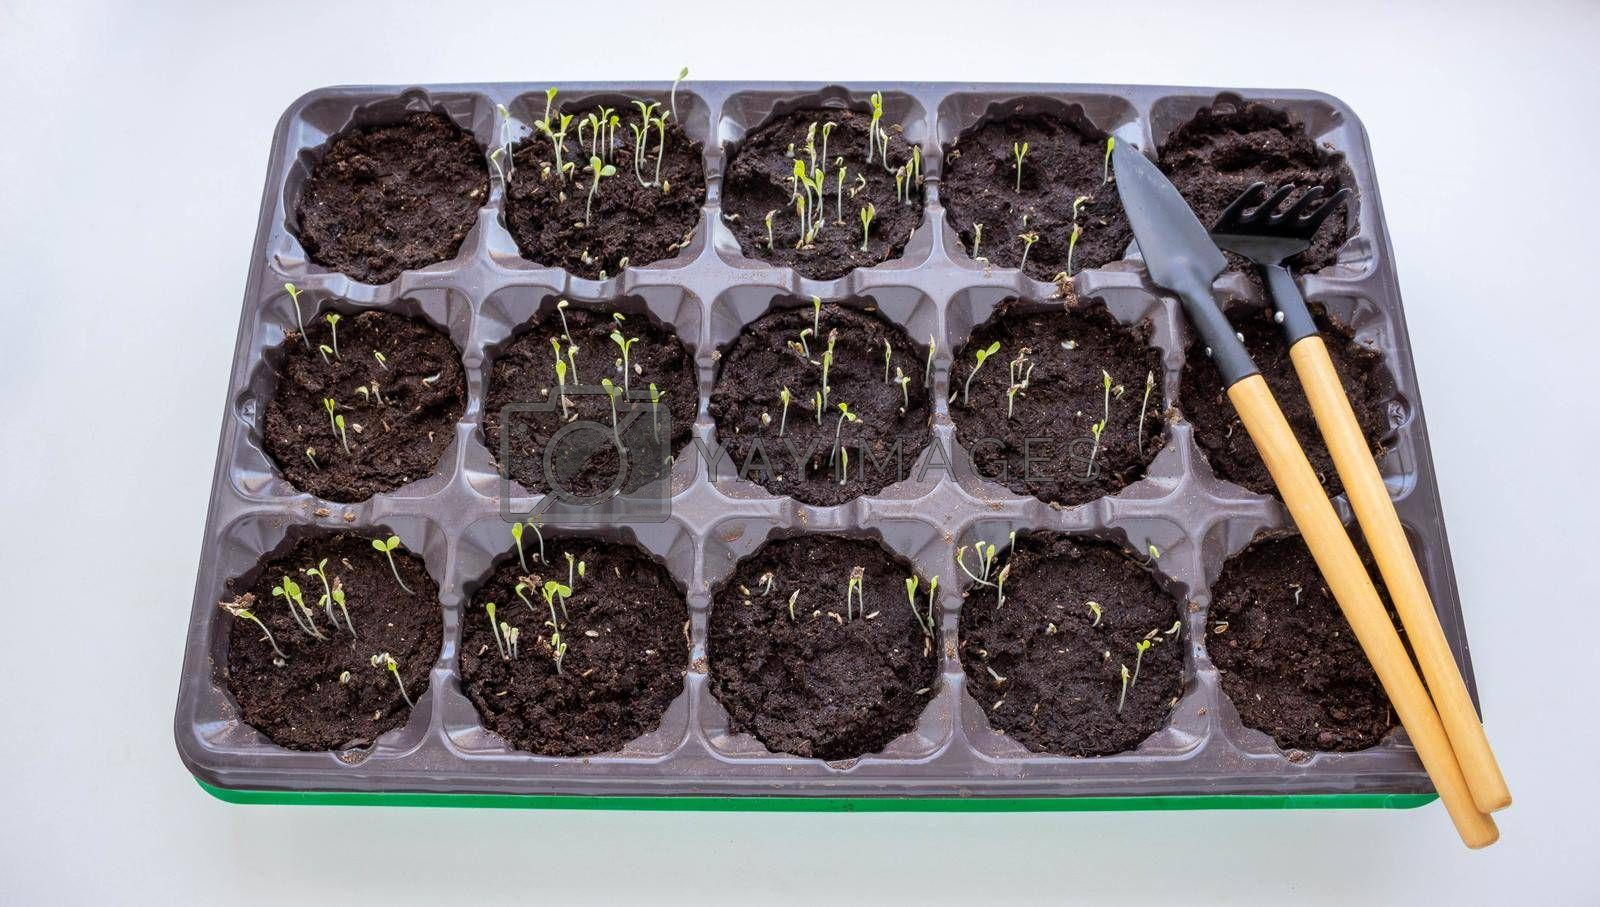 Photo of sprouting seedlings ready for the greenhouse. Spring background. Seedlings in the spring on the window. Seedlings in a plastic tray by lapushka62